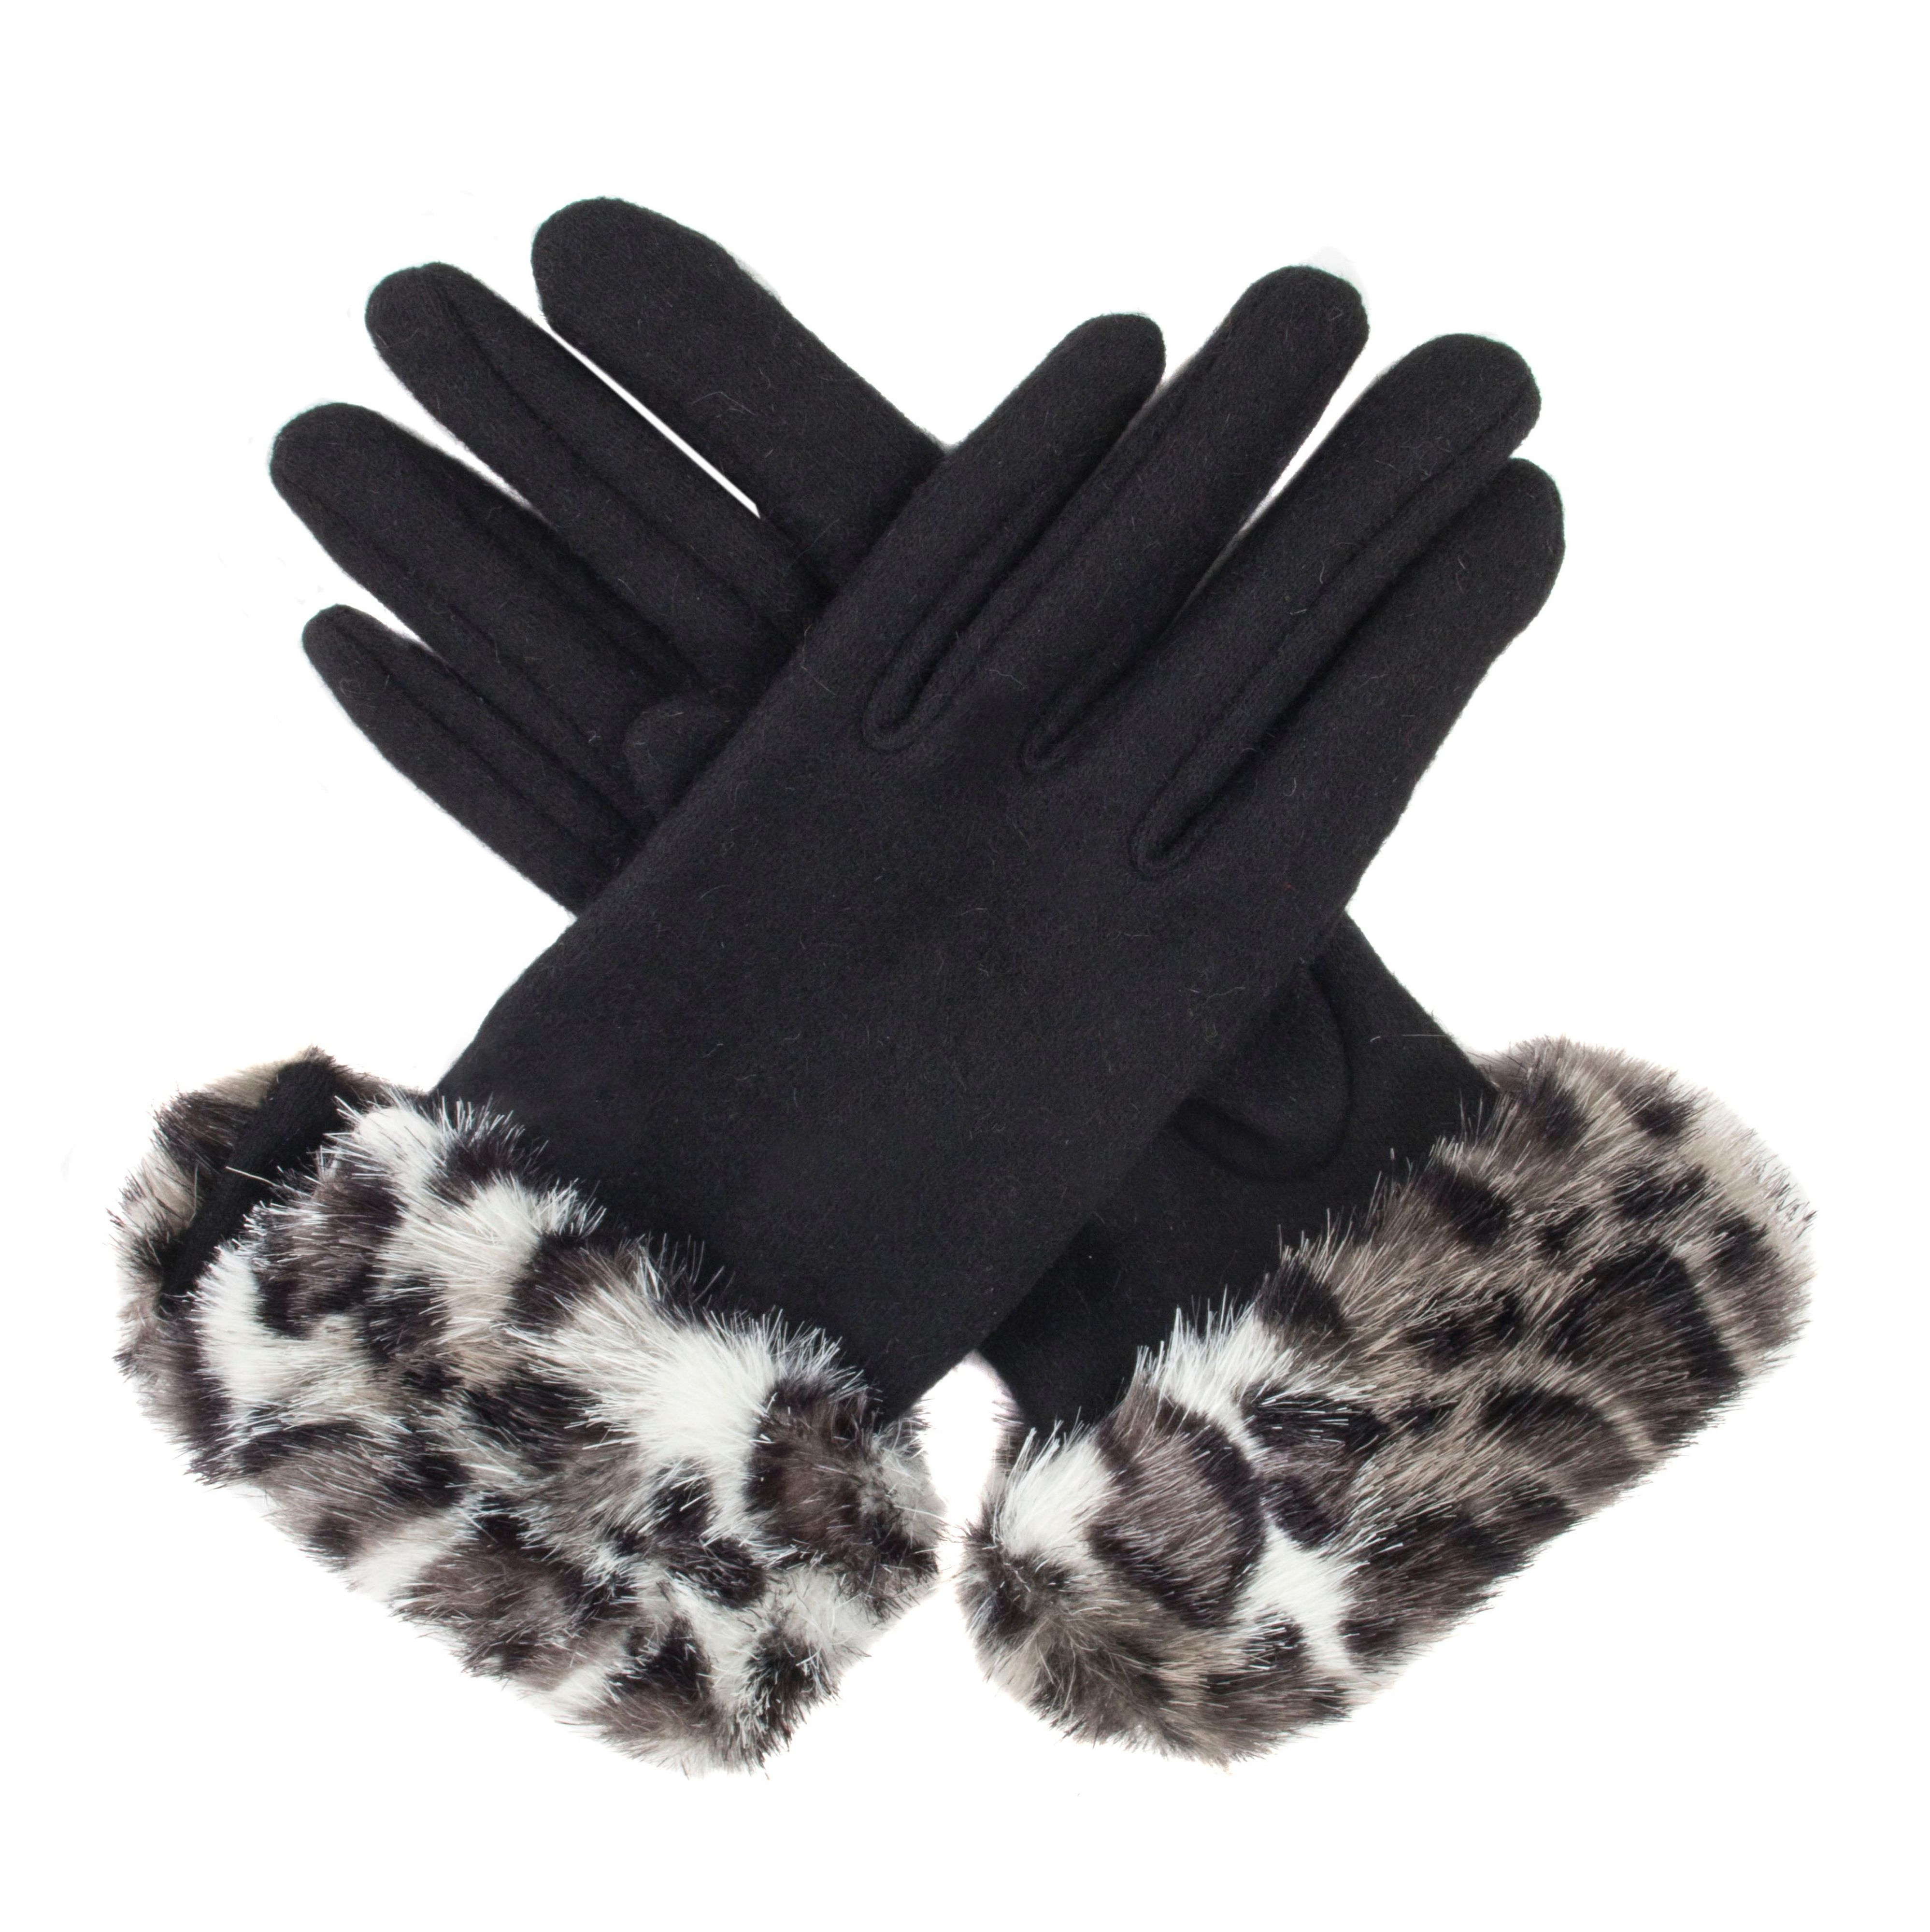 Vintage Style Gloves Dents Womens gloves with faux fur cuff Black £12.80 AT vintagedancer.com